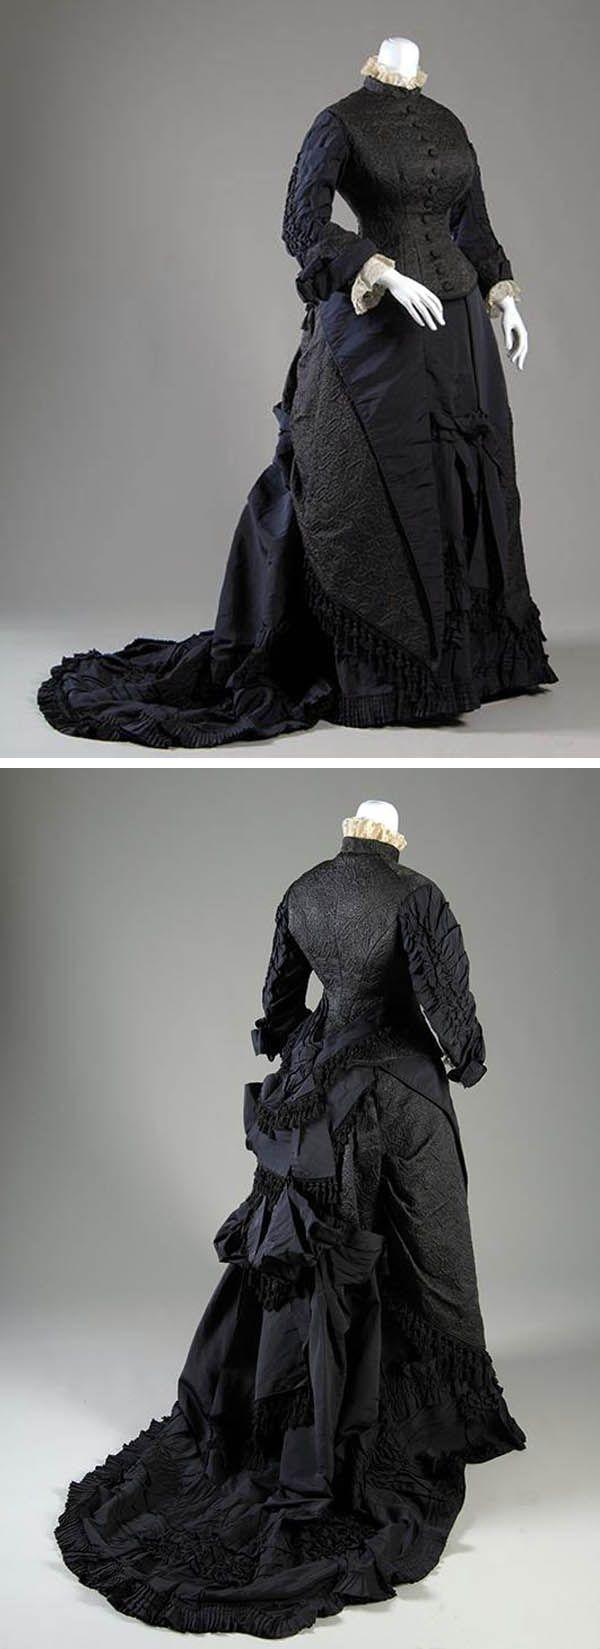 """Afternoon dress, Chouvenin & Legrand, France, ca. 1877. Matelassé and silk faille. Museum of the Fashion Institute of Technology: """"The bustle of the late 1870s emphasized the derriere, while the tightness of the dress in front also outlined the shape of a woman's legs. Pronounced curves, as in this gown, were aided by new techniques in corsetry that precisely molded the length of the body and made the bust more prominent."""""""